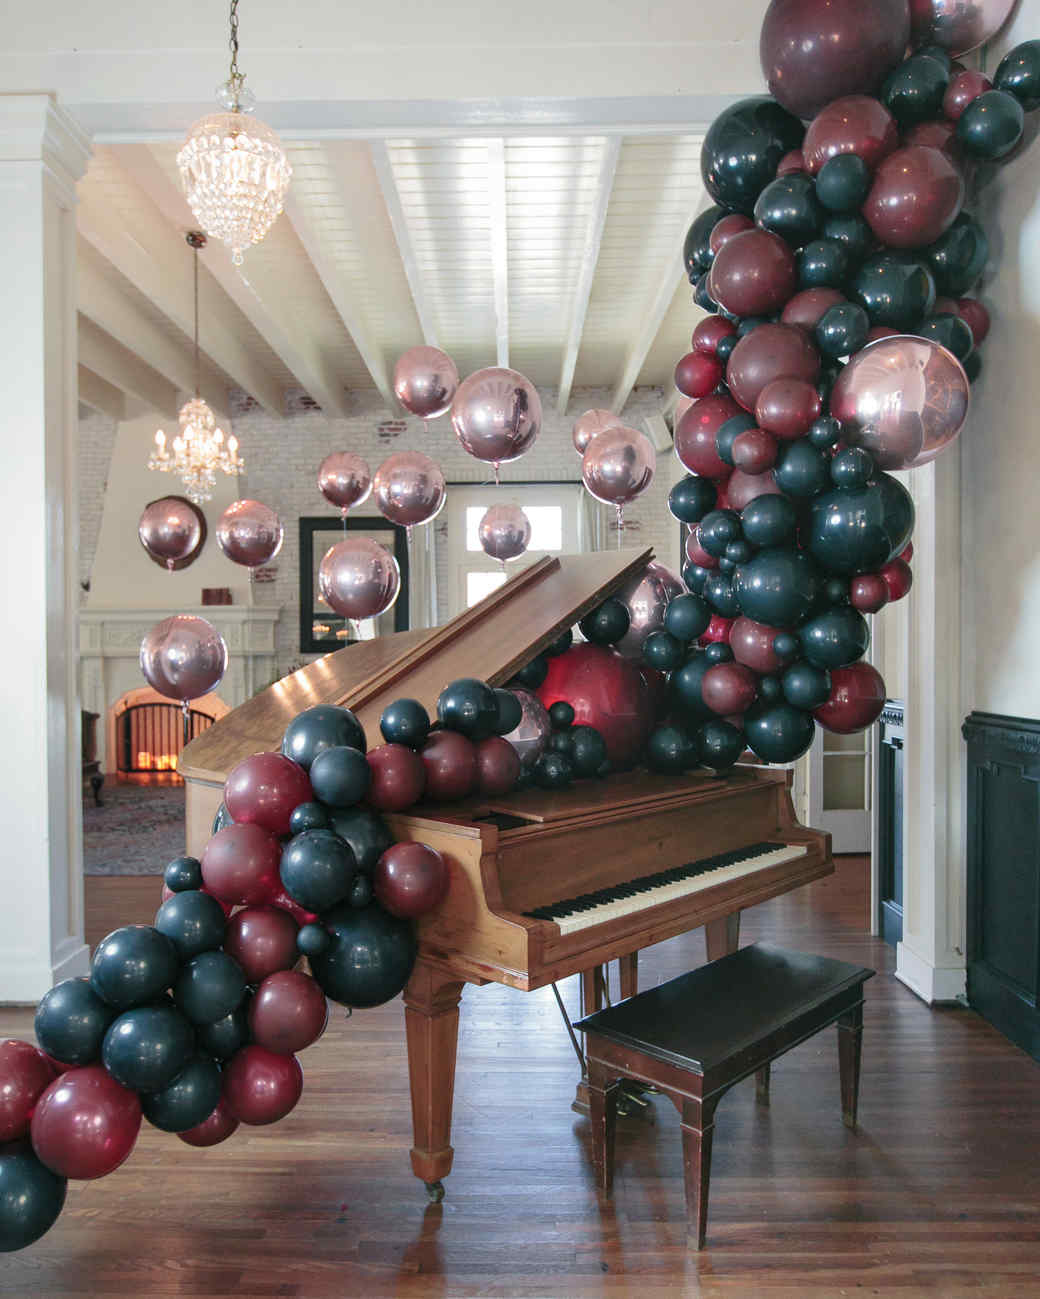 23 balloon ideas thatll give your next party extra pop martha stewart - Christmas Balloon Decor